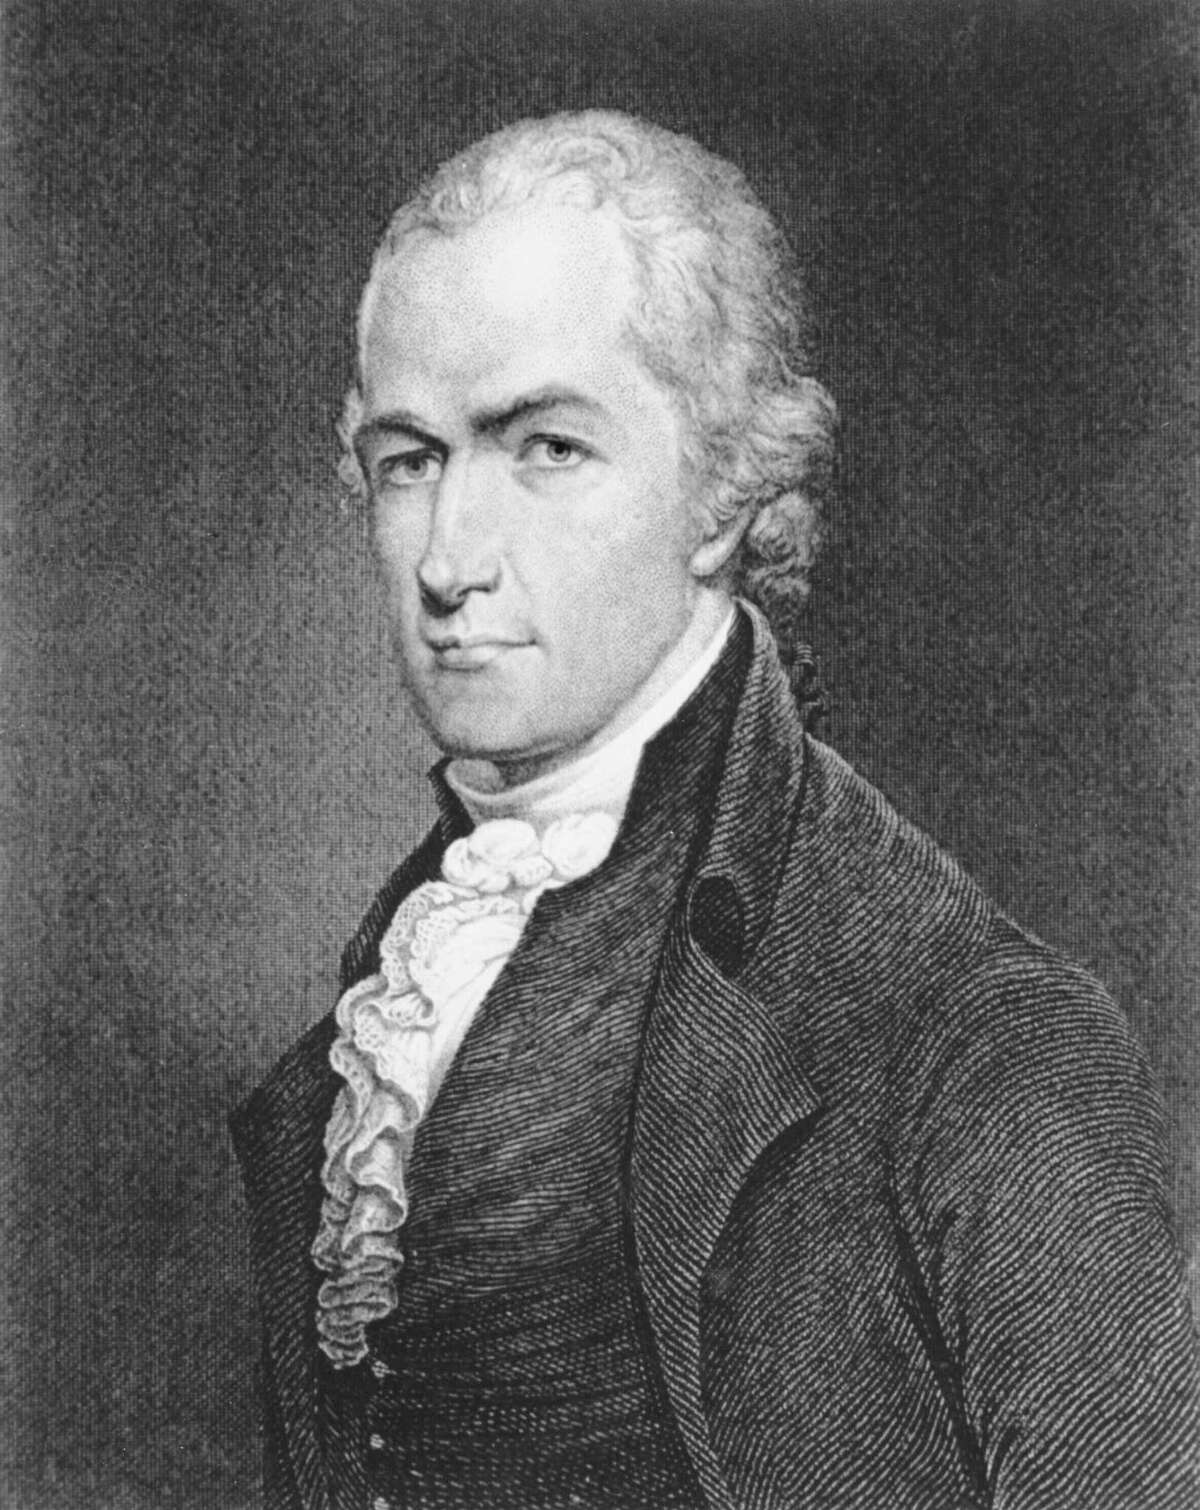 An etching of Alexander Hamilton from the Library of Congress.